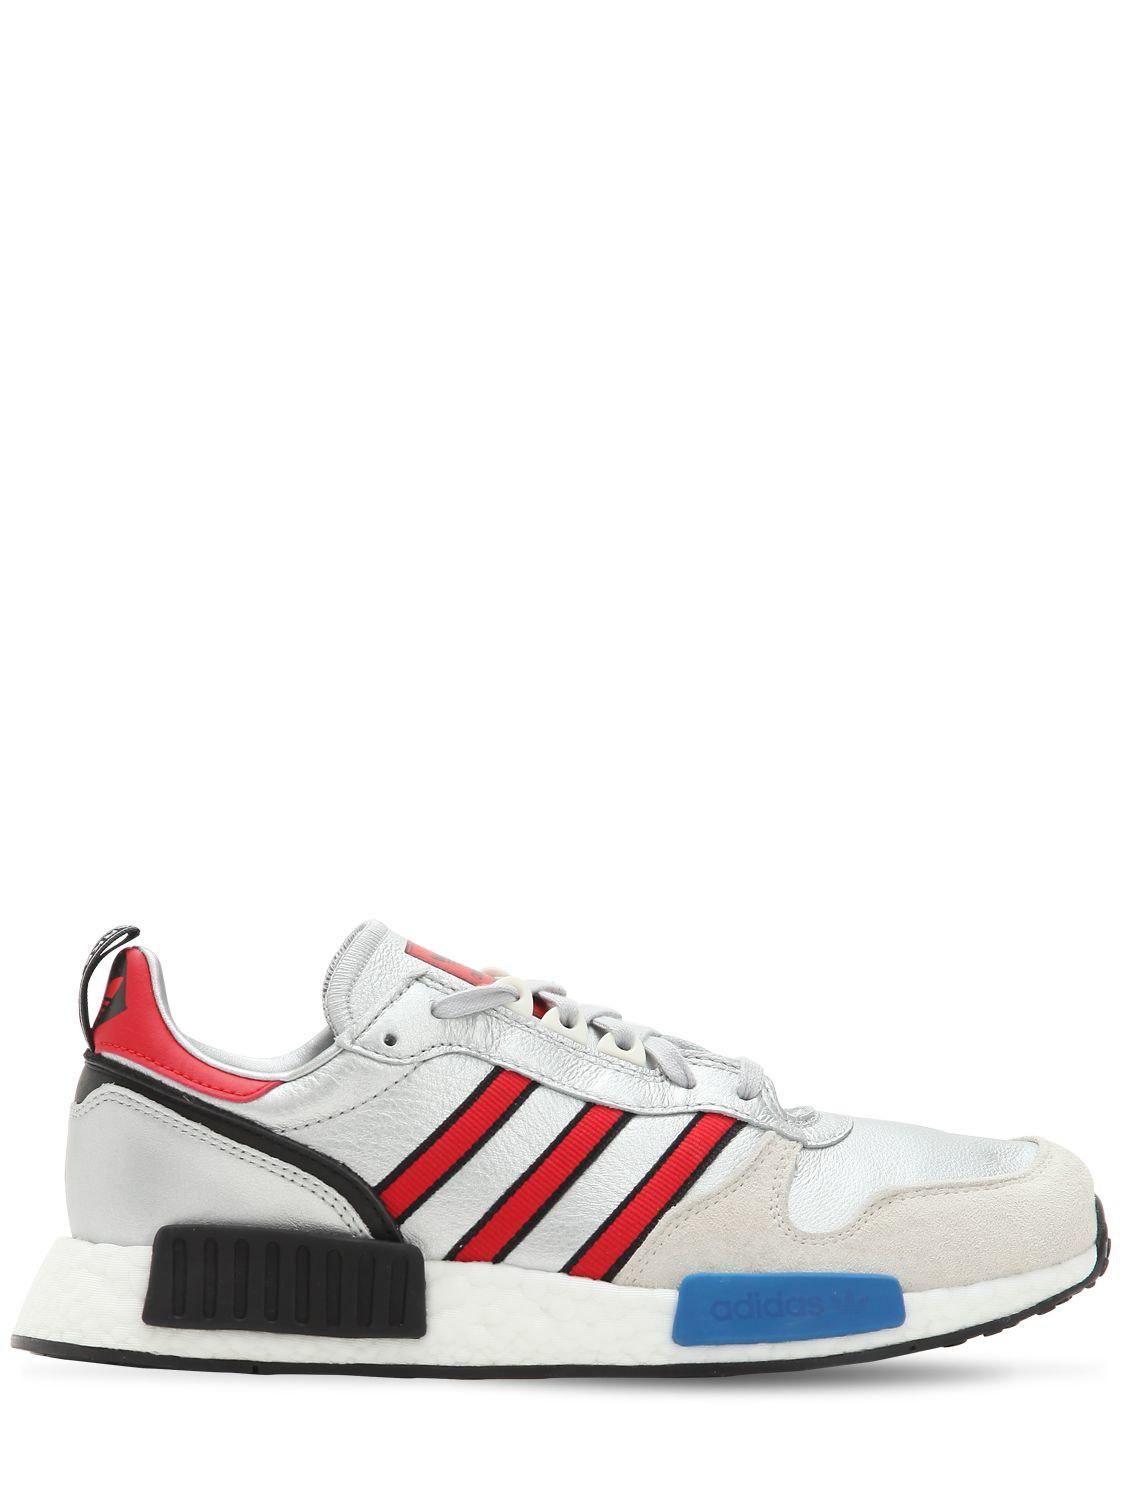 72614268ea384 Lyst - adidas Originals Rising Star X R1 Metallic Sneakers in ...